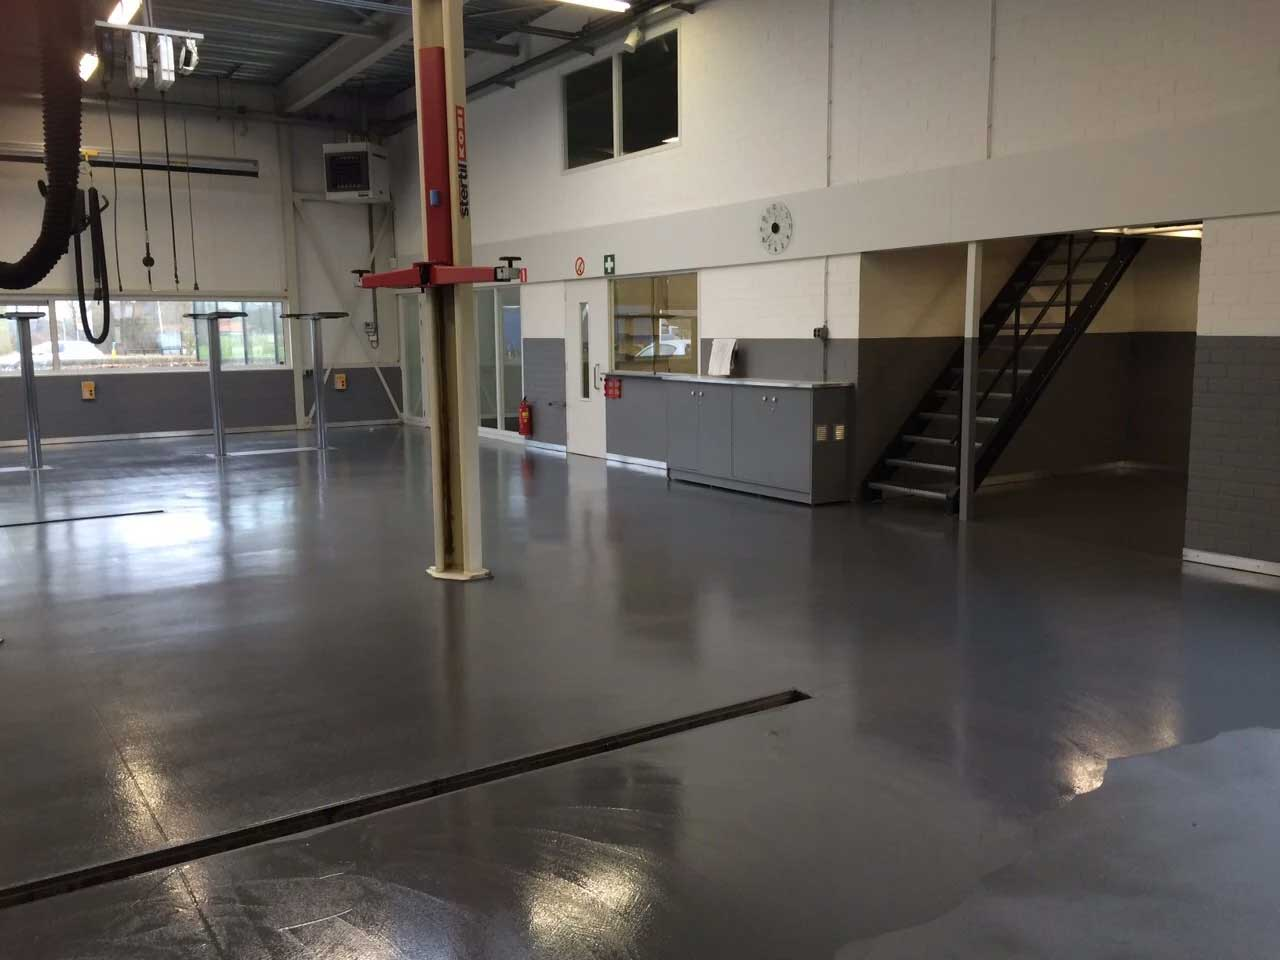 Epoxy Vloercoating Garage Need Workshop Or Garage Floor Or Wall Coatings Mesa Coatings